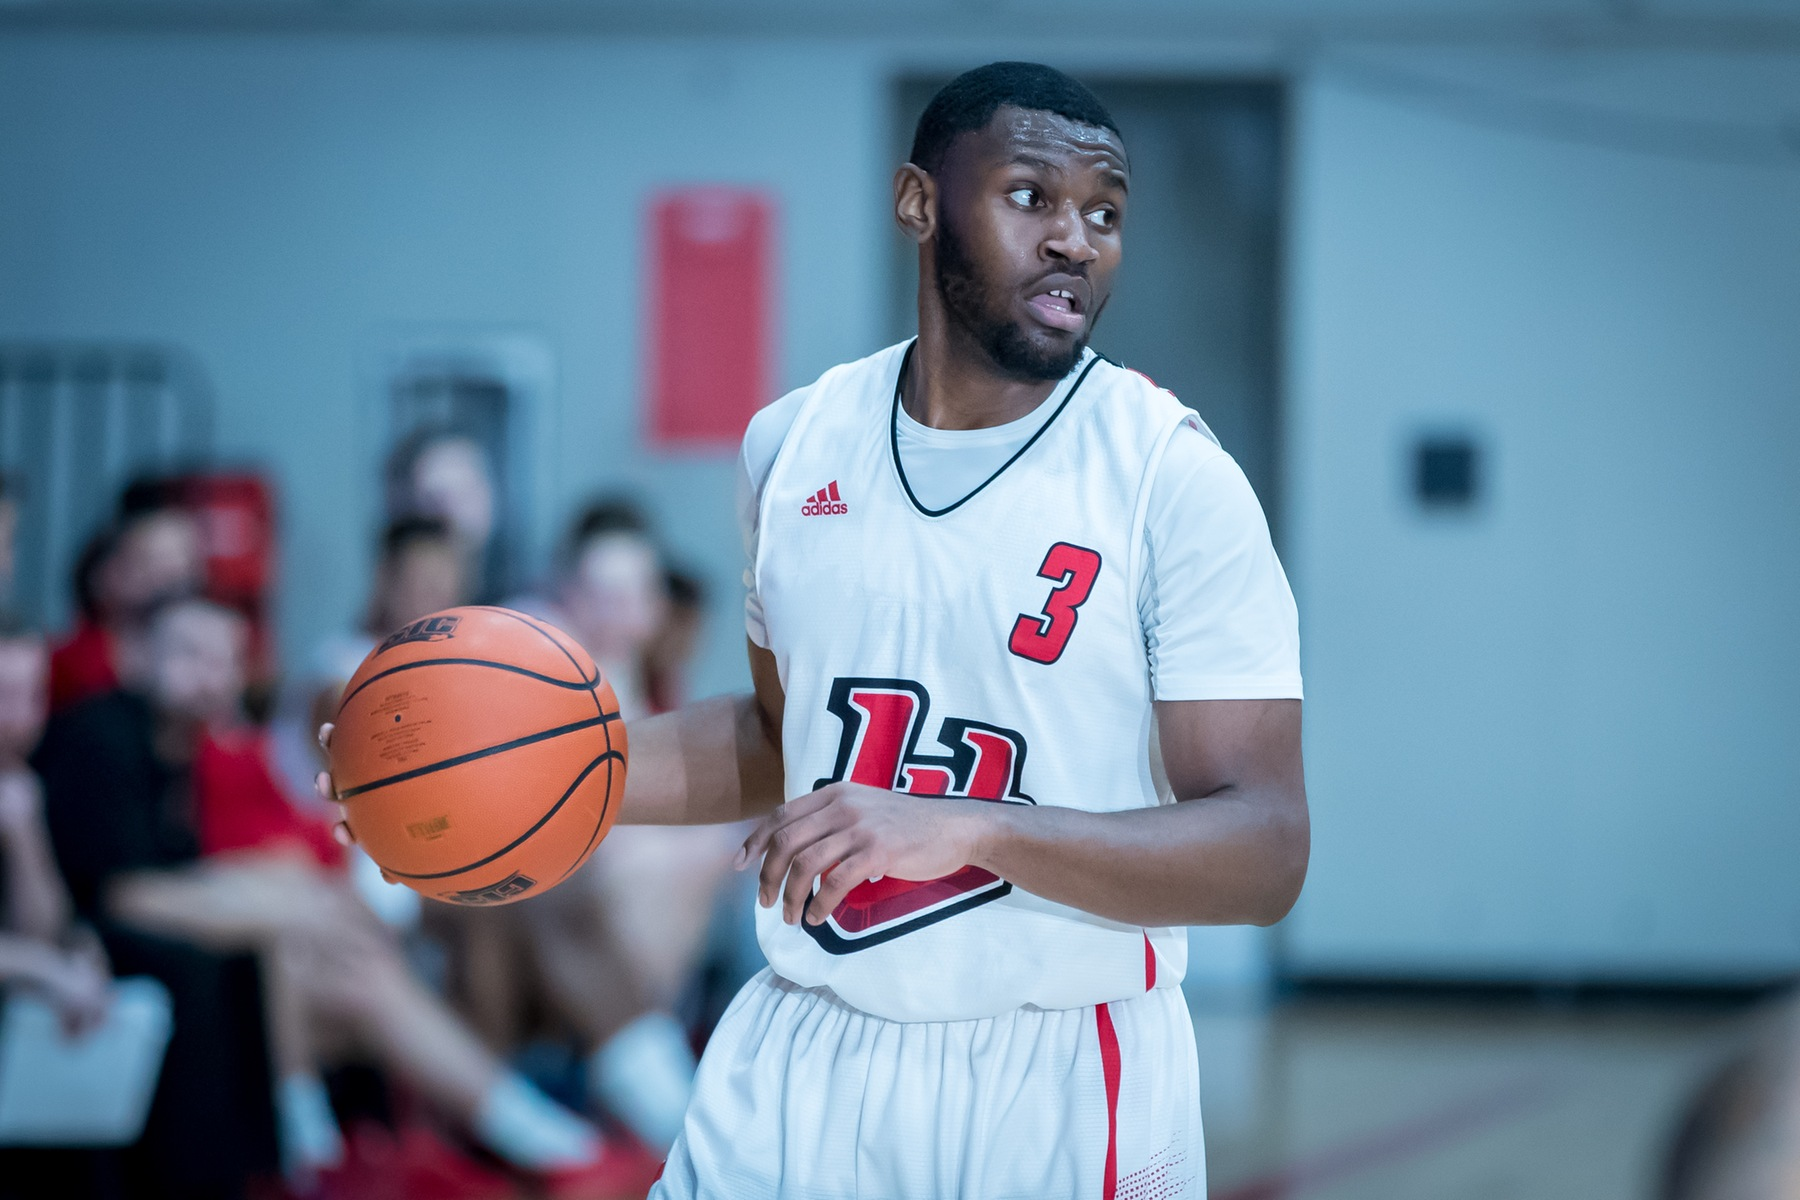 Narcisse Ambanza had 25 points Friday in a loss to the Lethbridge Pronghorns. (Kelly Morton/Wesmen Athletics file)